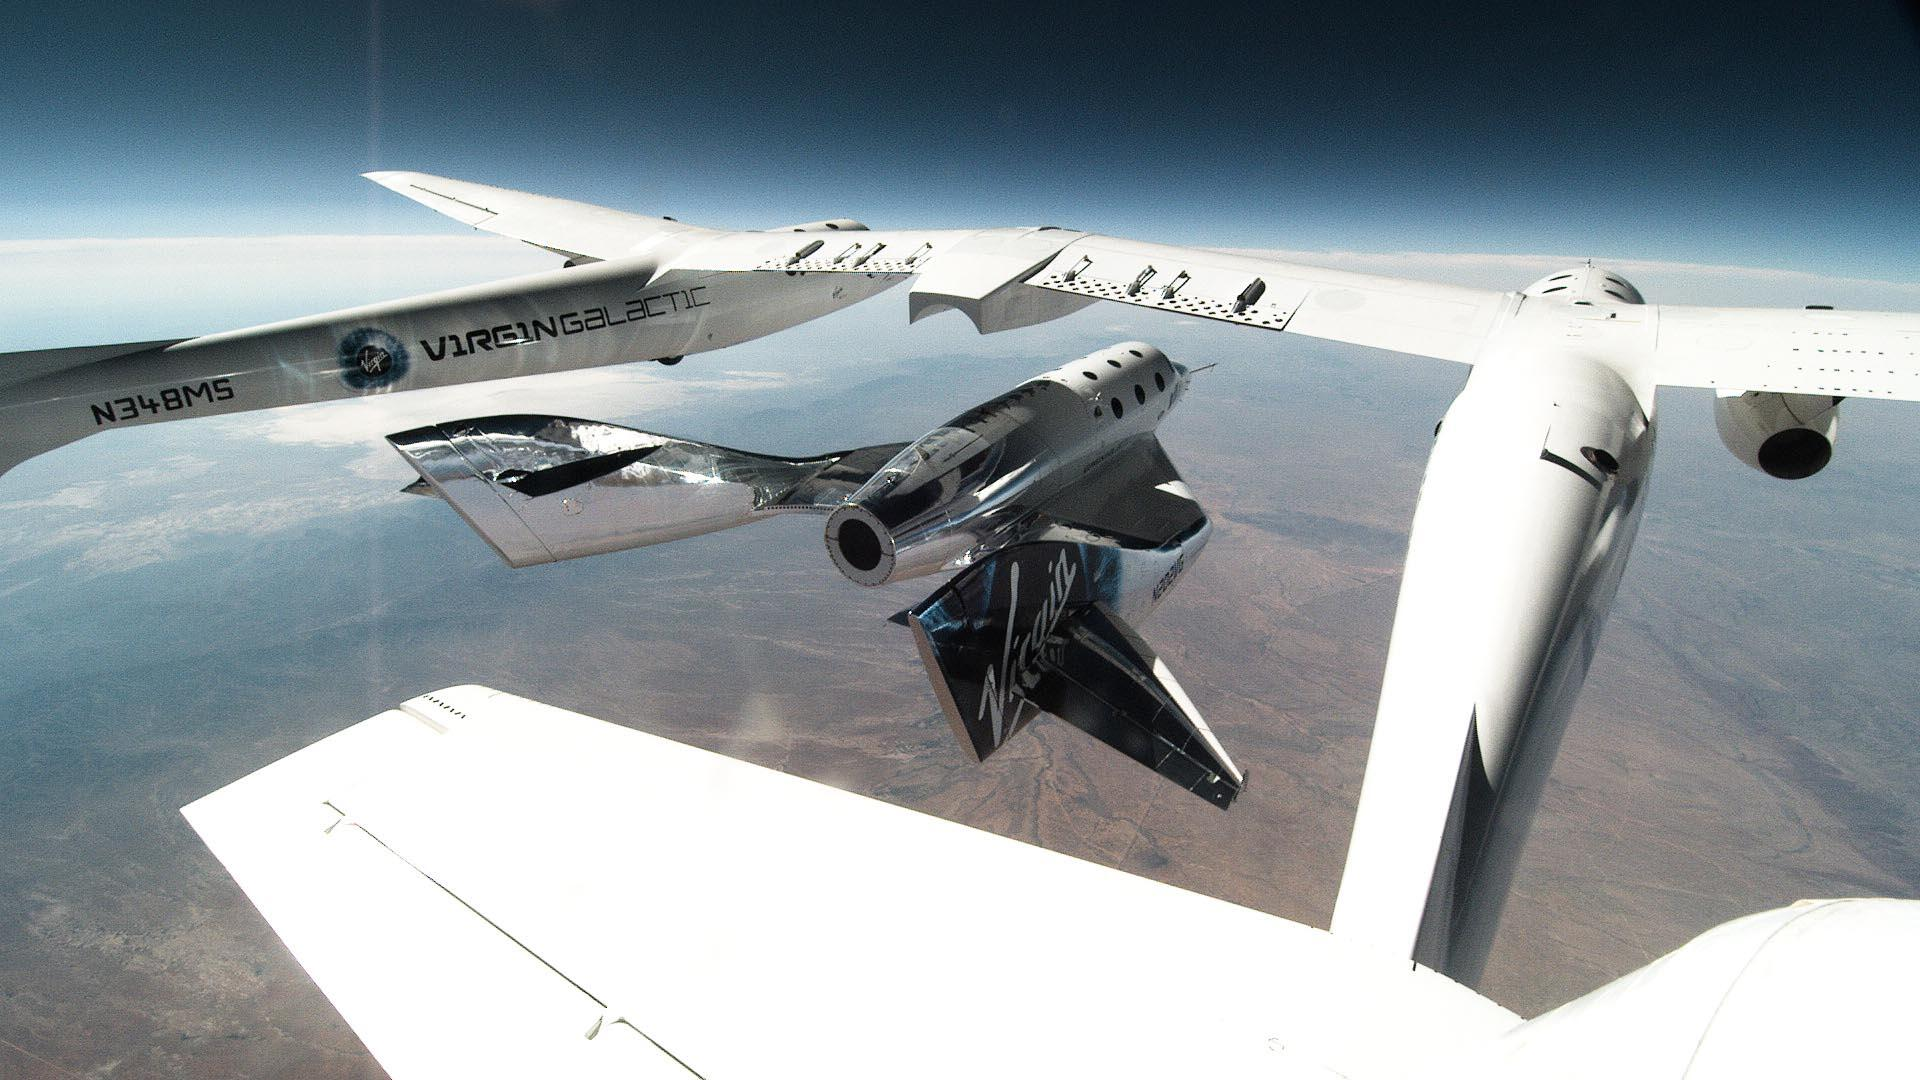 spaceshiptwo-unity-released-from-vms-eve-for-second-glide-flight-in-new-mexico